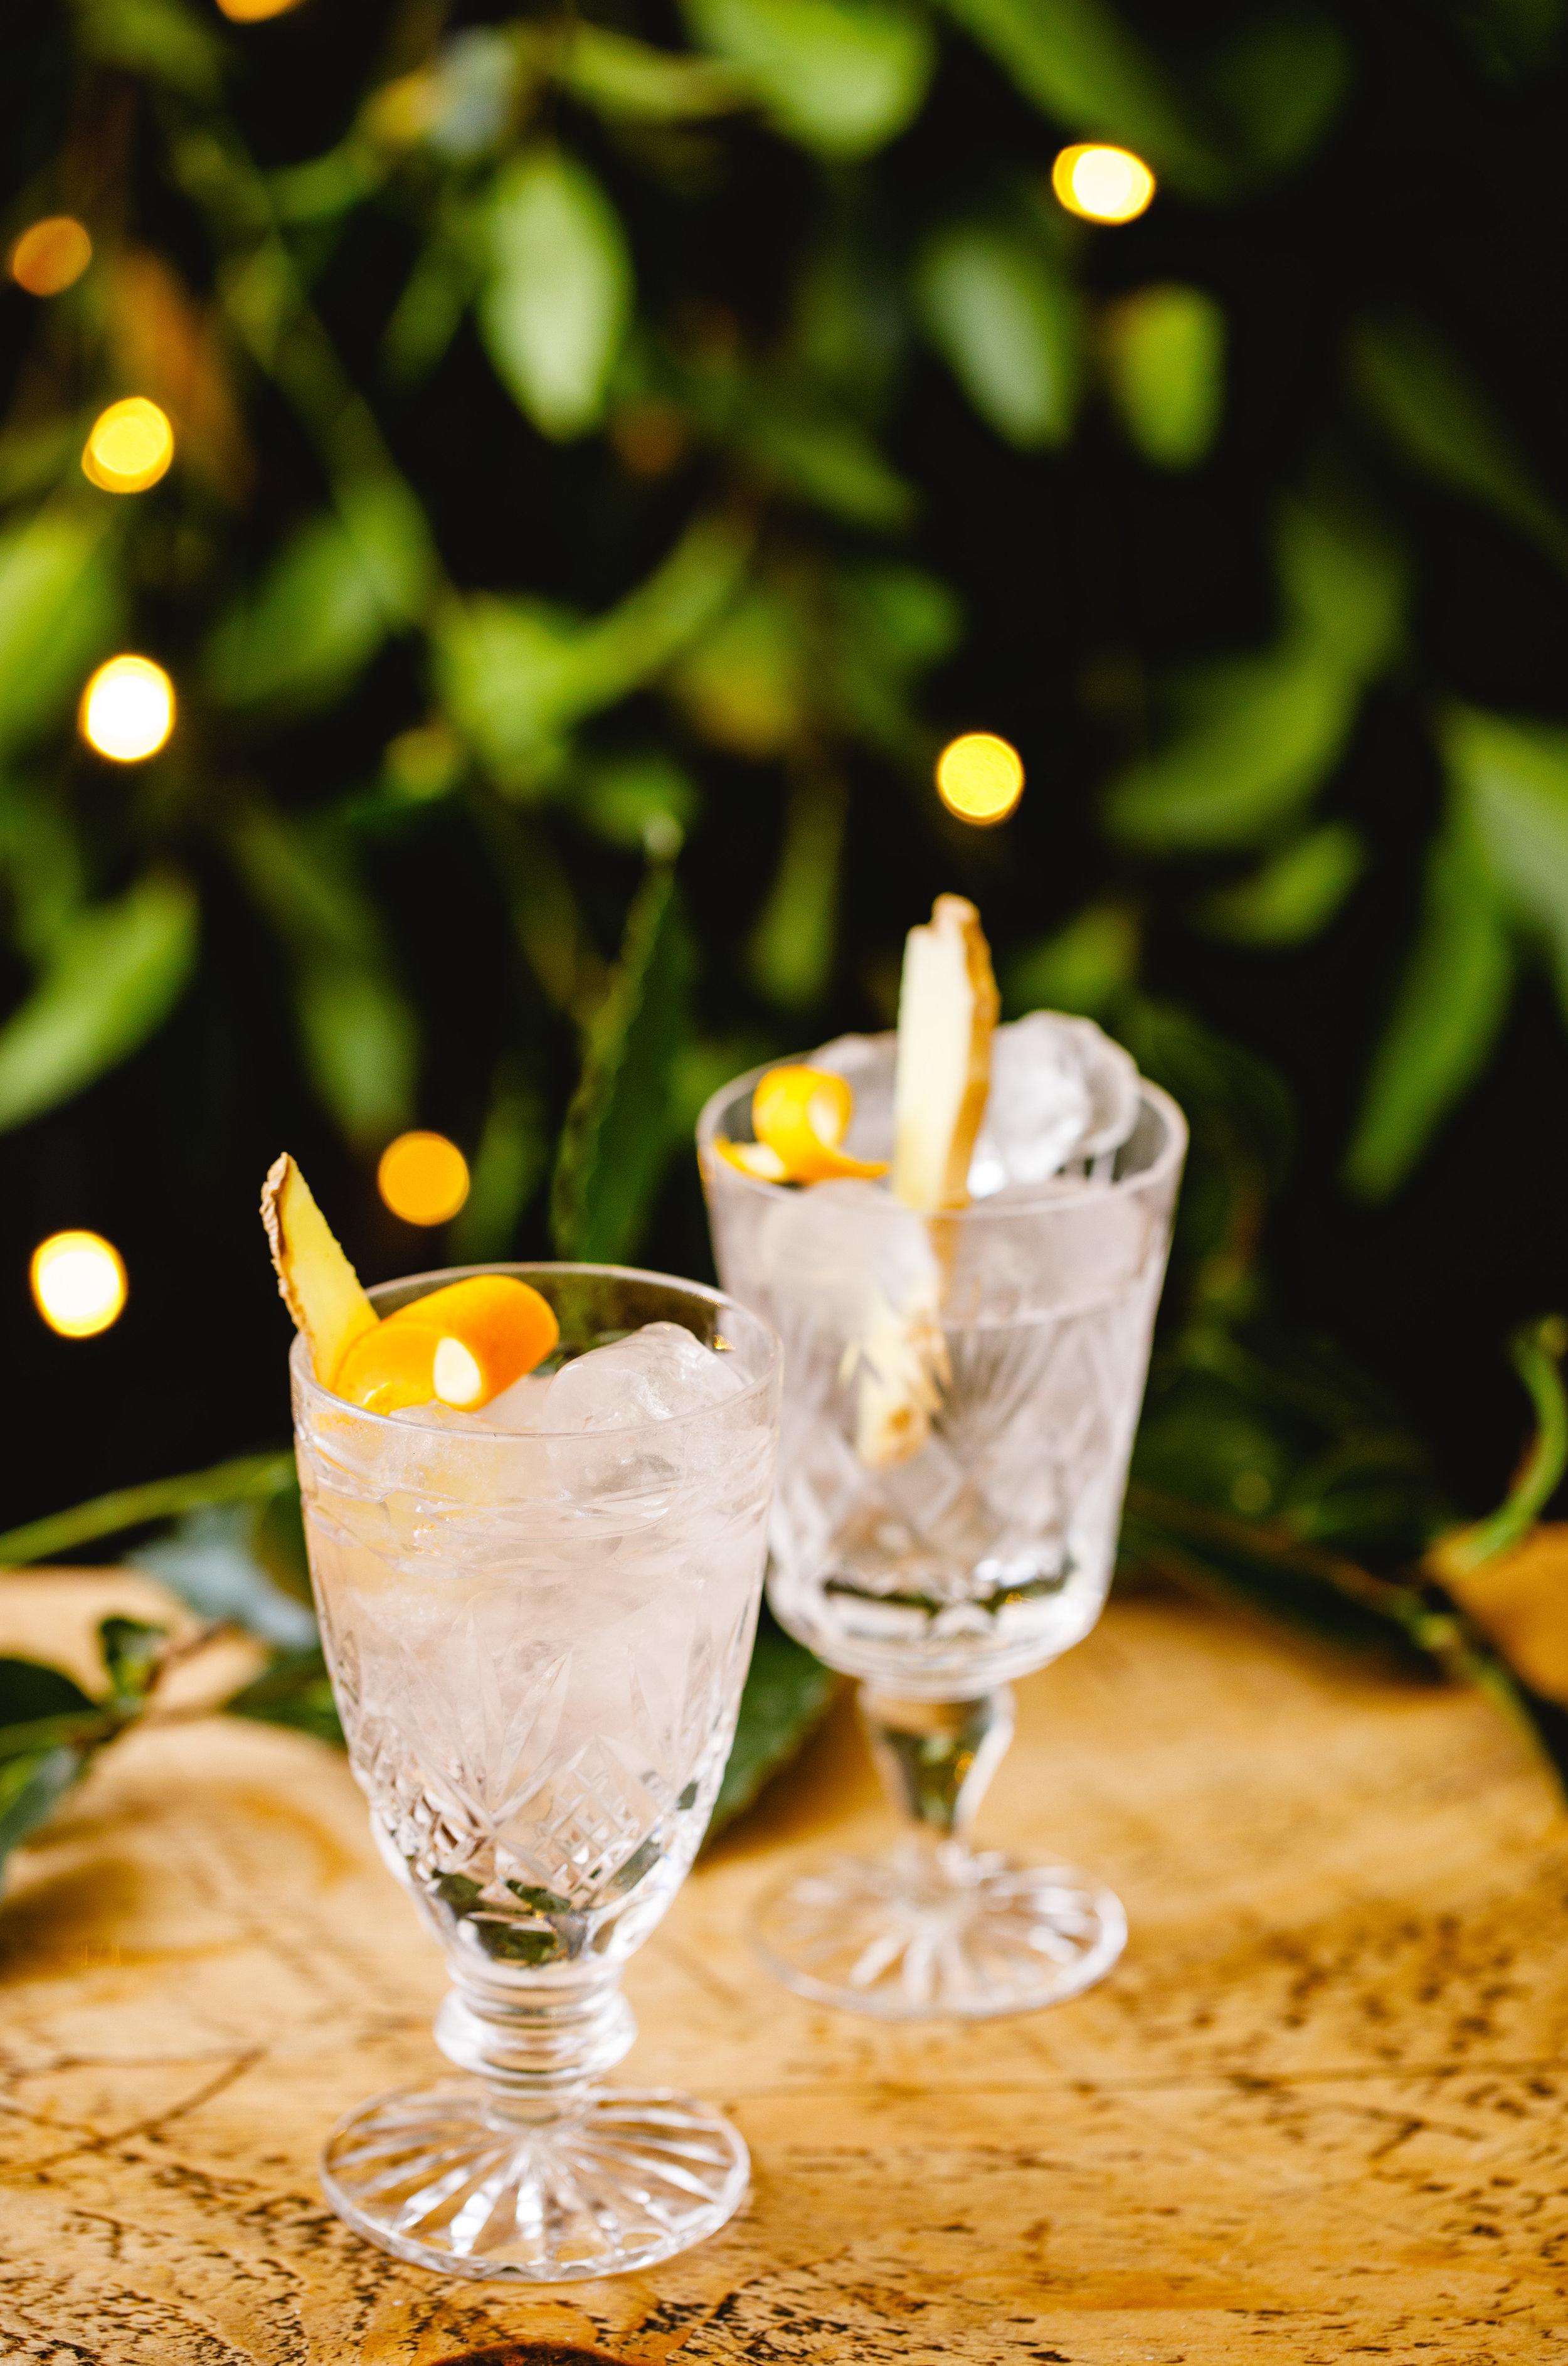 Festive G&T - Difficulty: Super Easy!